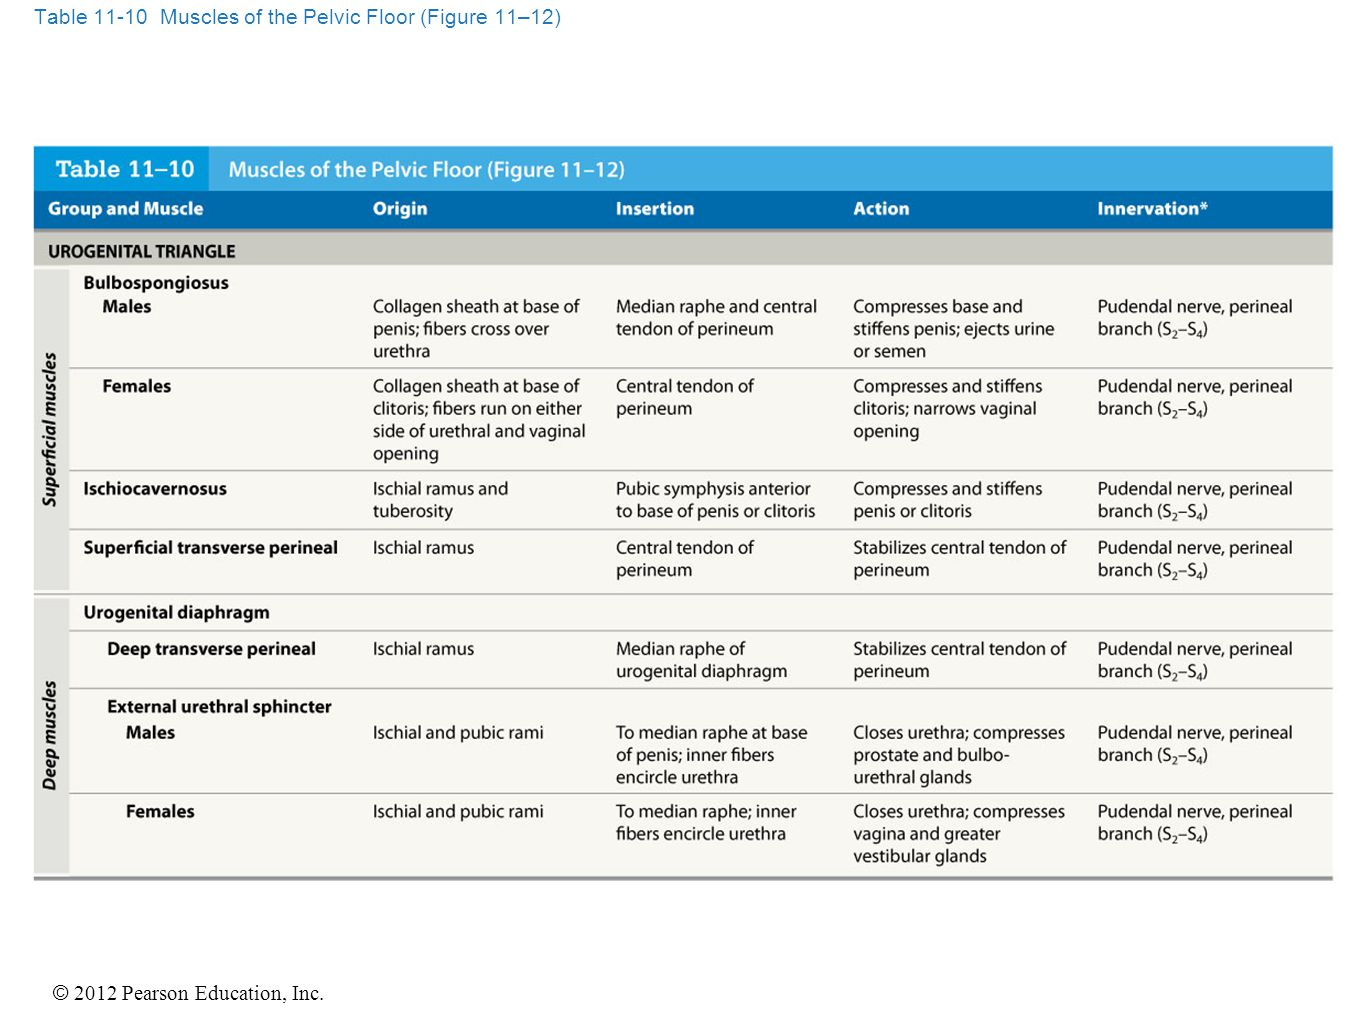 © 2012 Pearson Education, Inc. Table 11-13 Muscles That Move the Forearm and Hand (Figure 11–16)